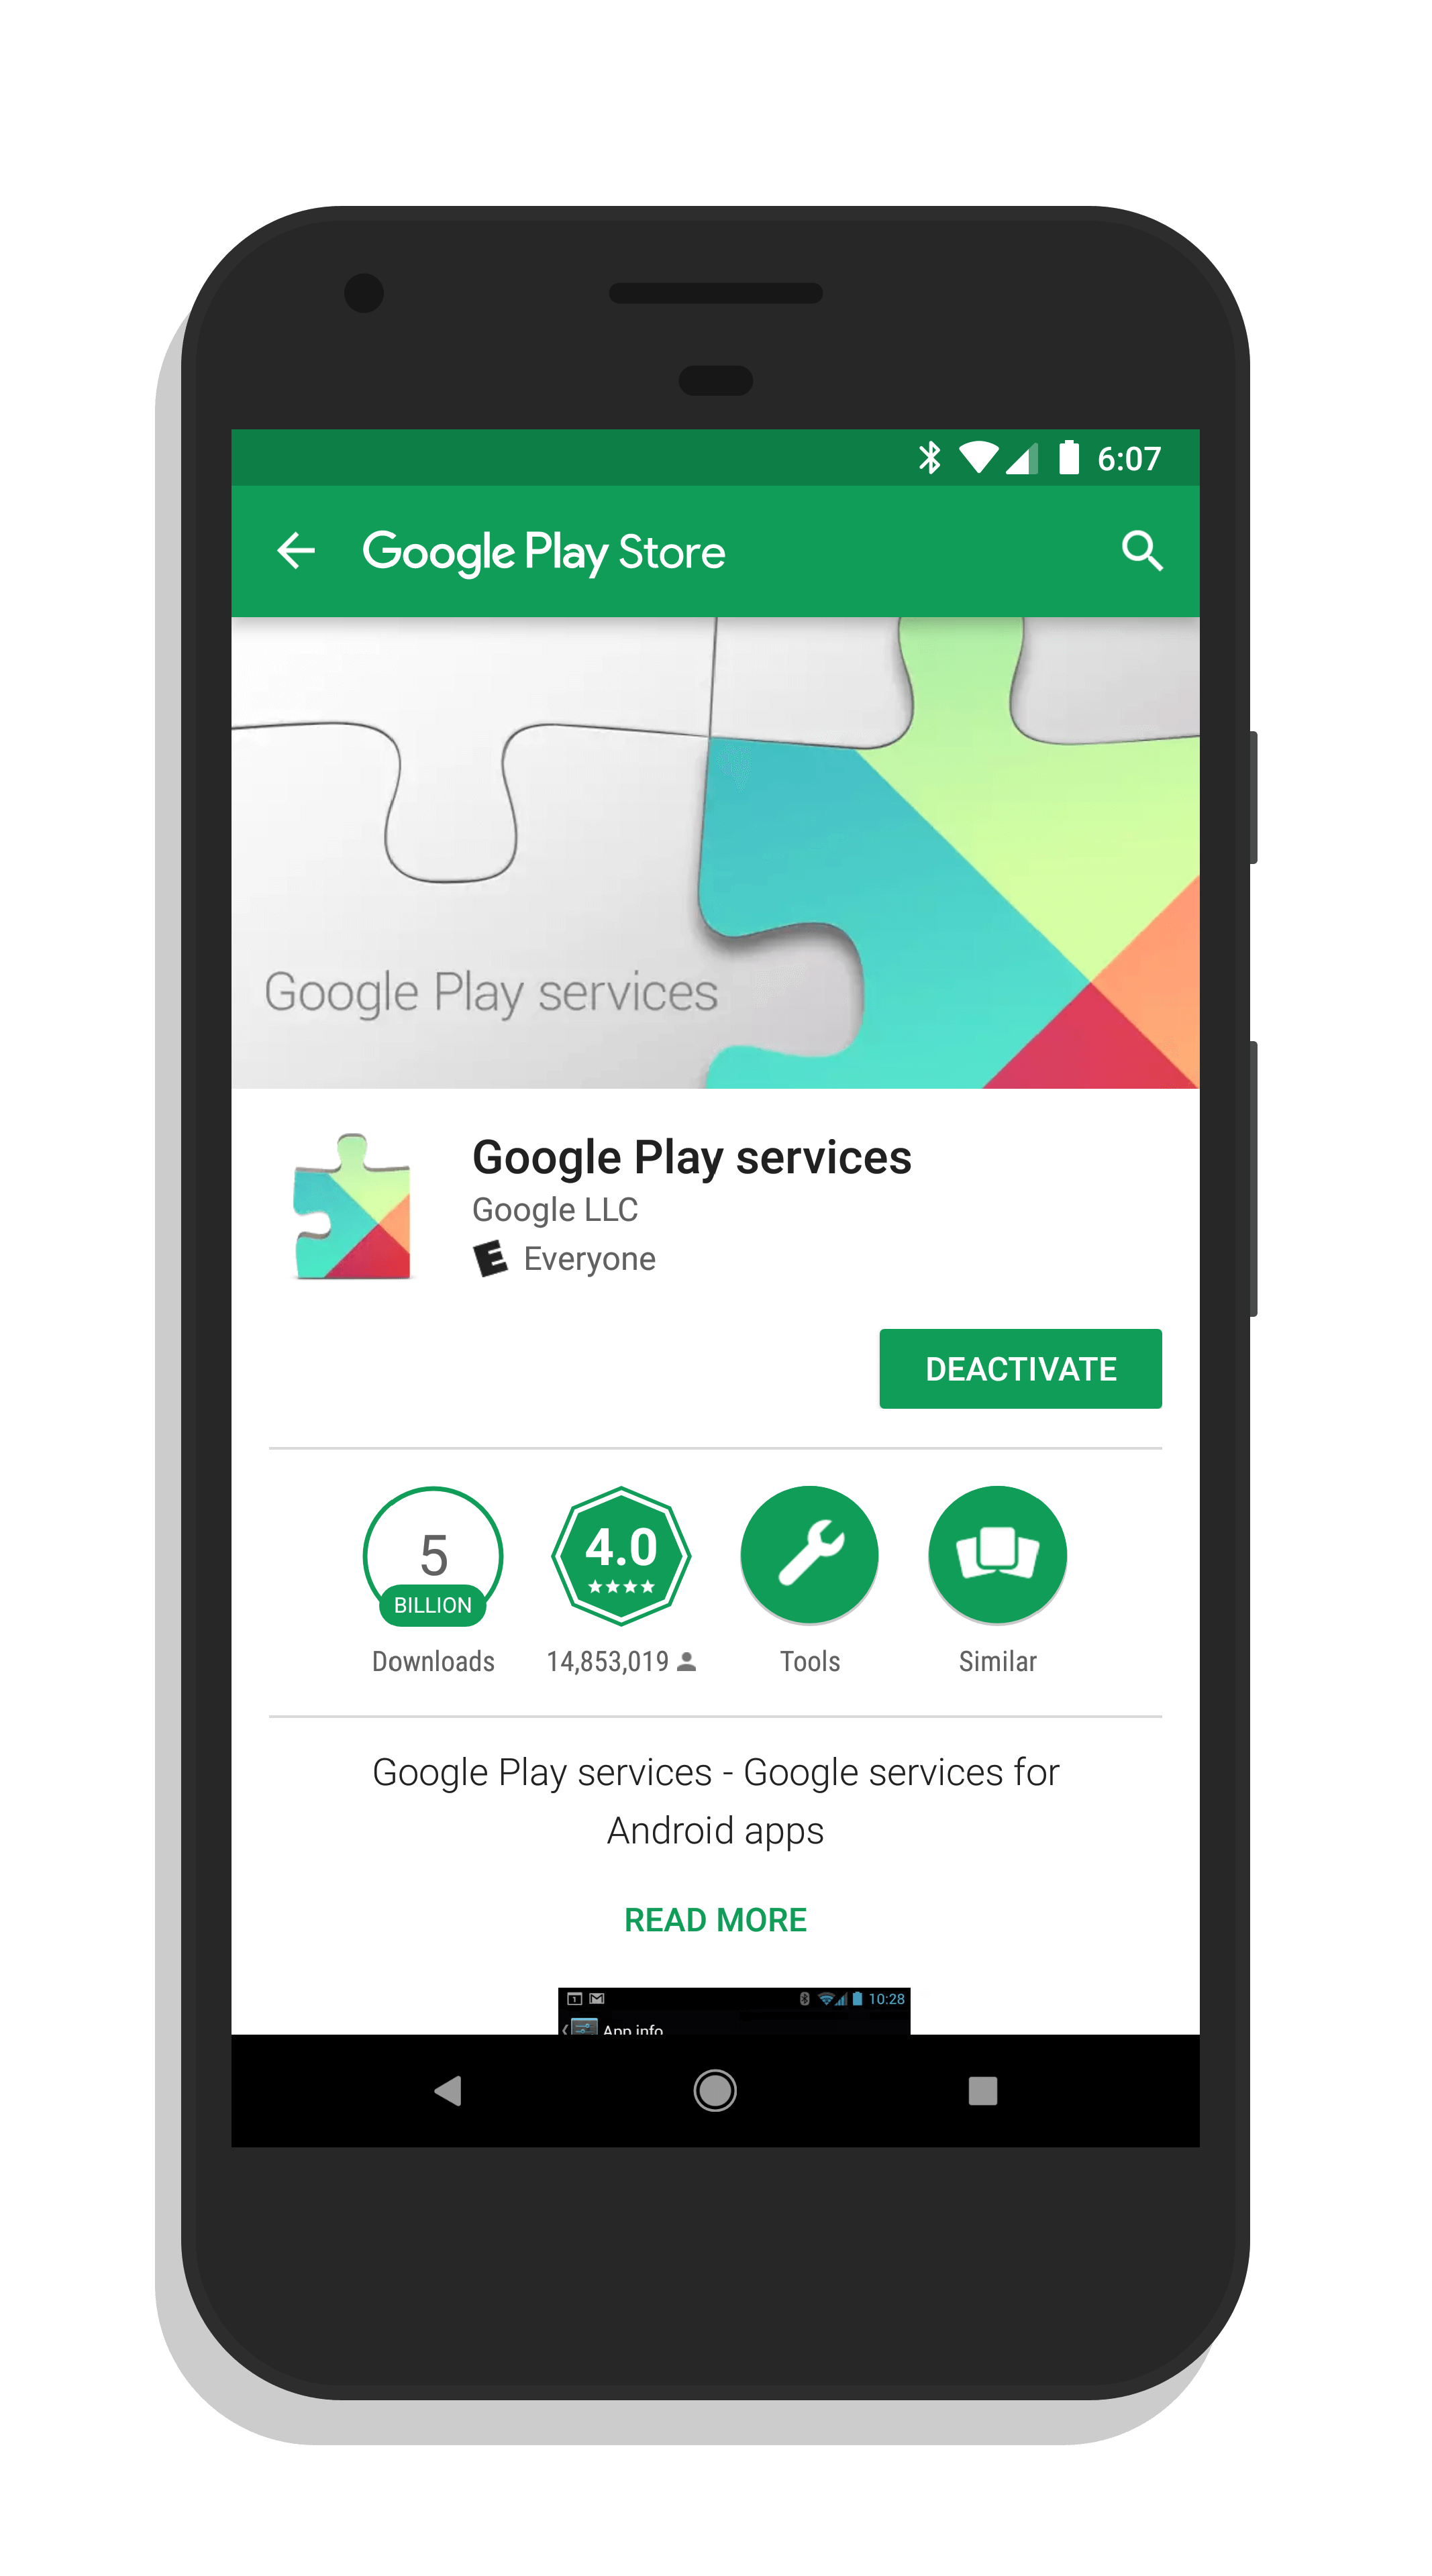 Google Play Services Update Released to Fix Network Issues